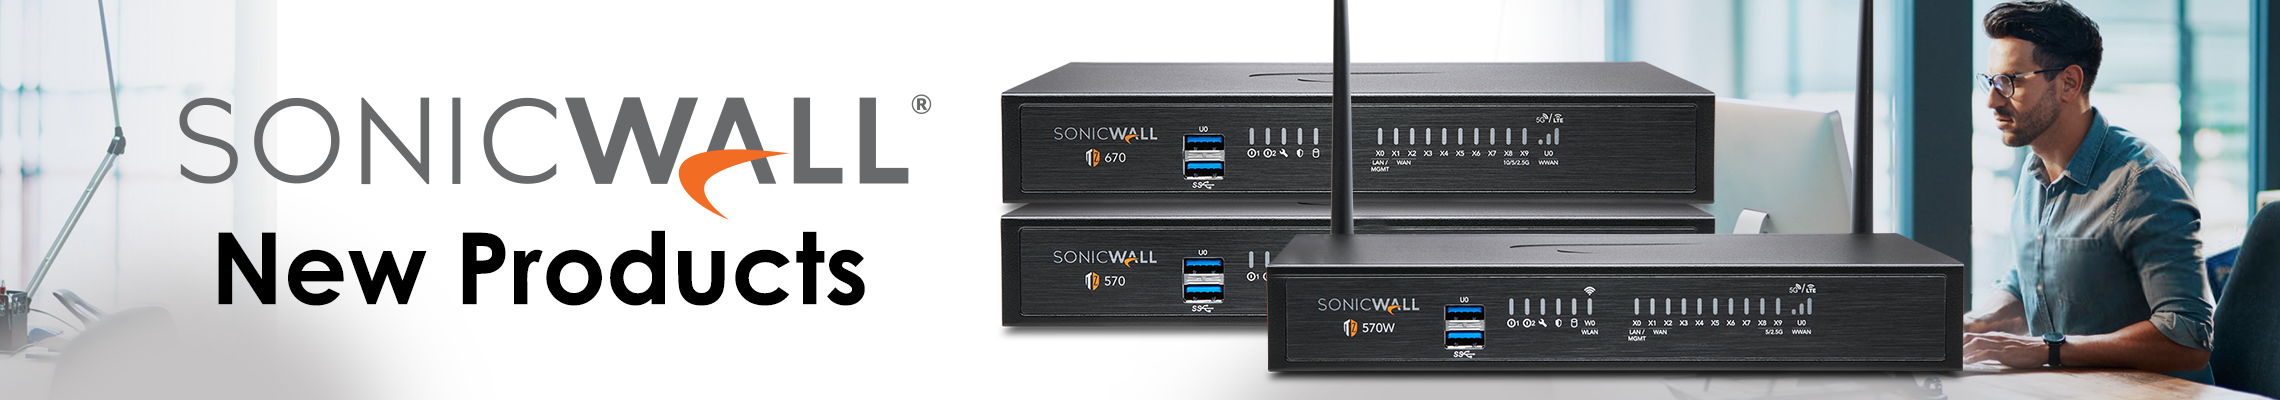 SonicWall New Products